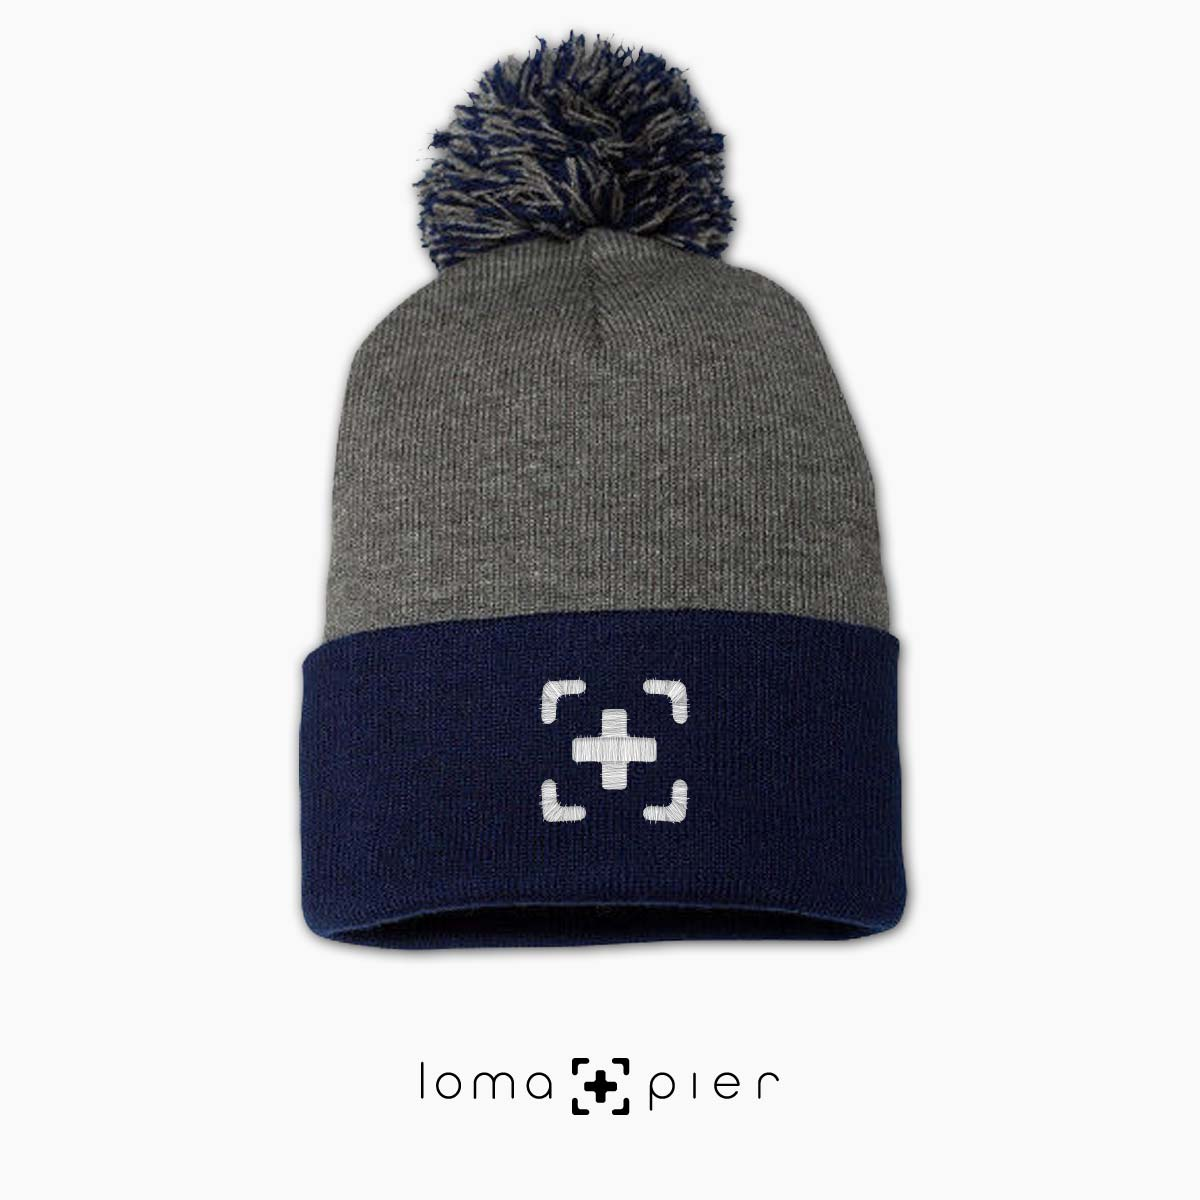 cute pom-pom beanie for women with icon in navy/grey by loma+pier hat store